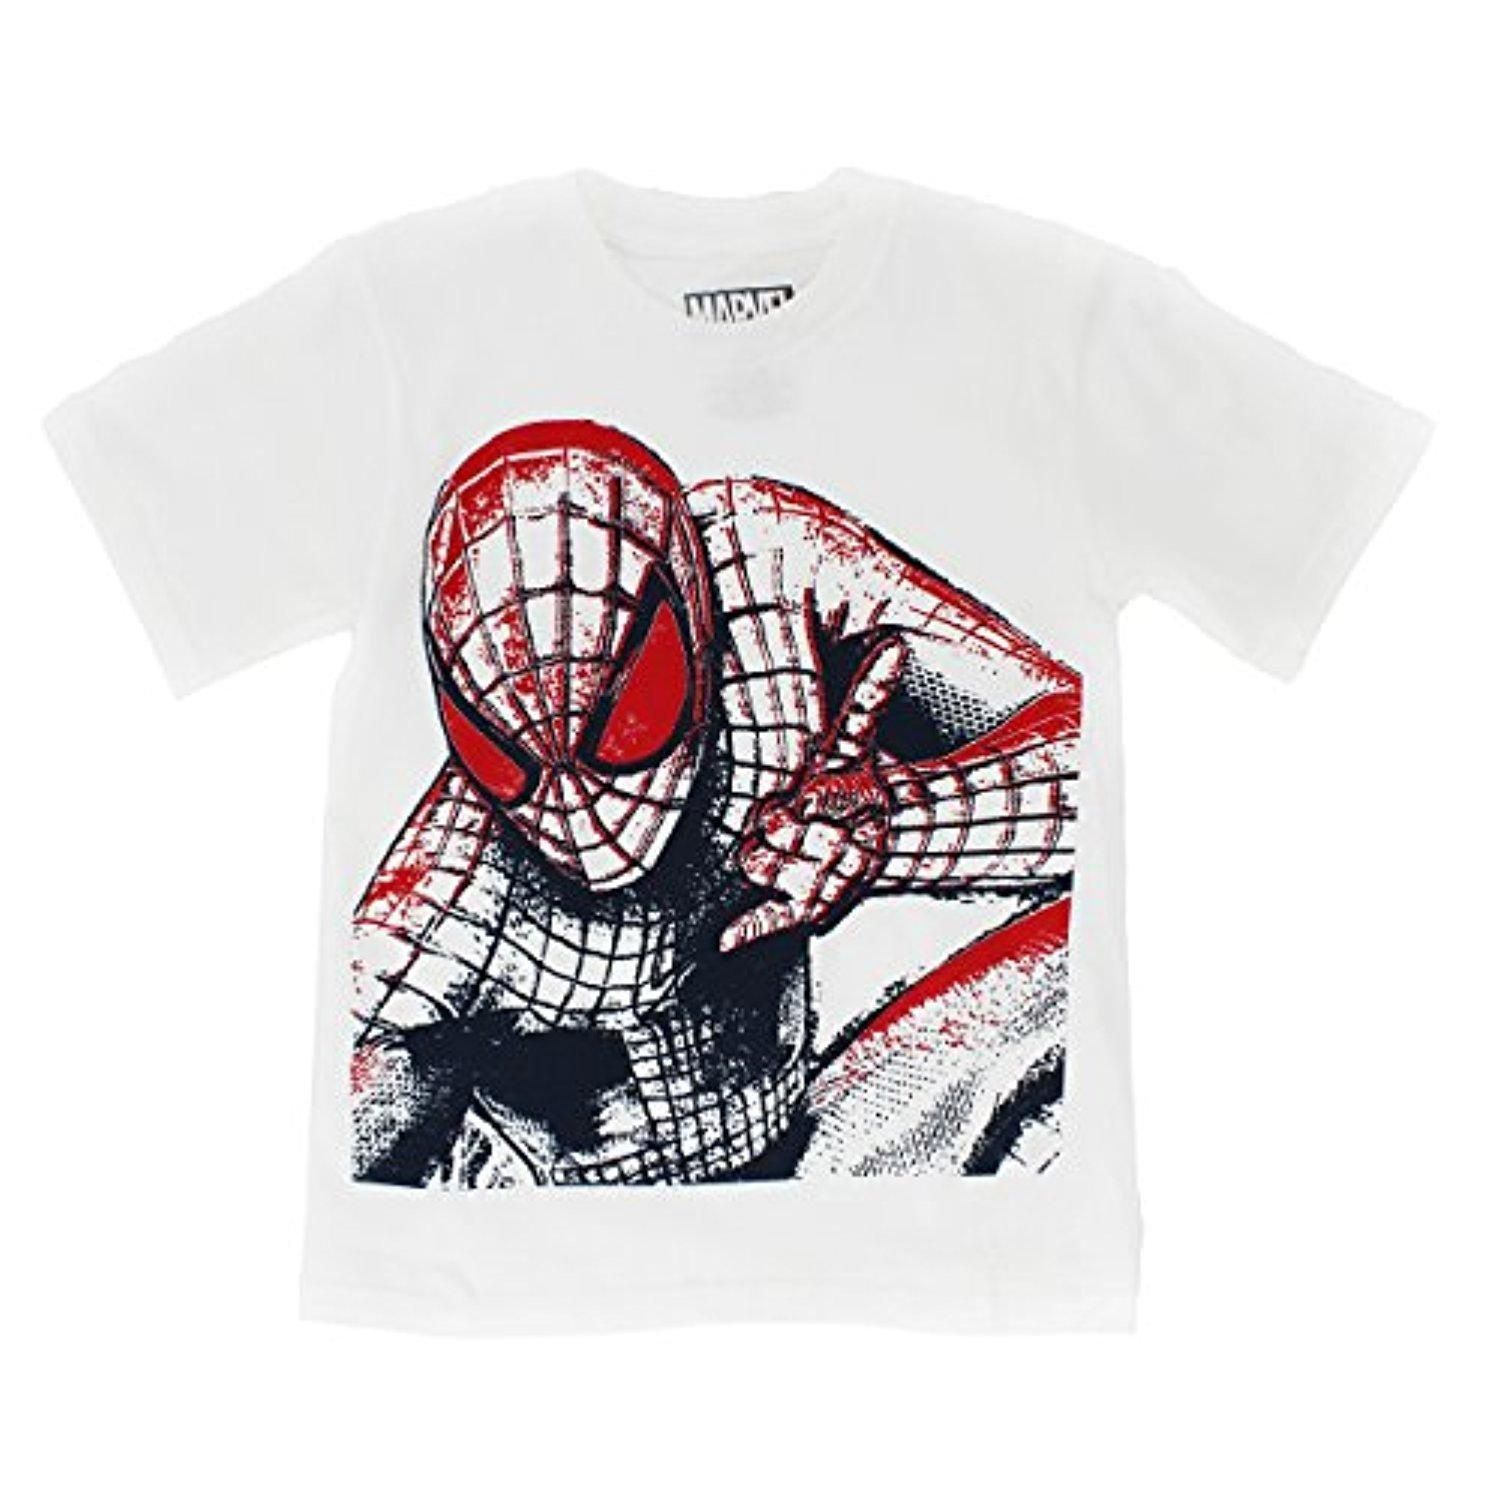 Marvel Comics Heroes Boys T-Shirt (7, White (Spider-Man)) - Brought to you by Avarsha.com